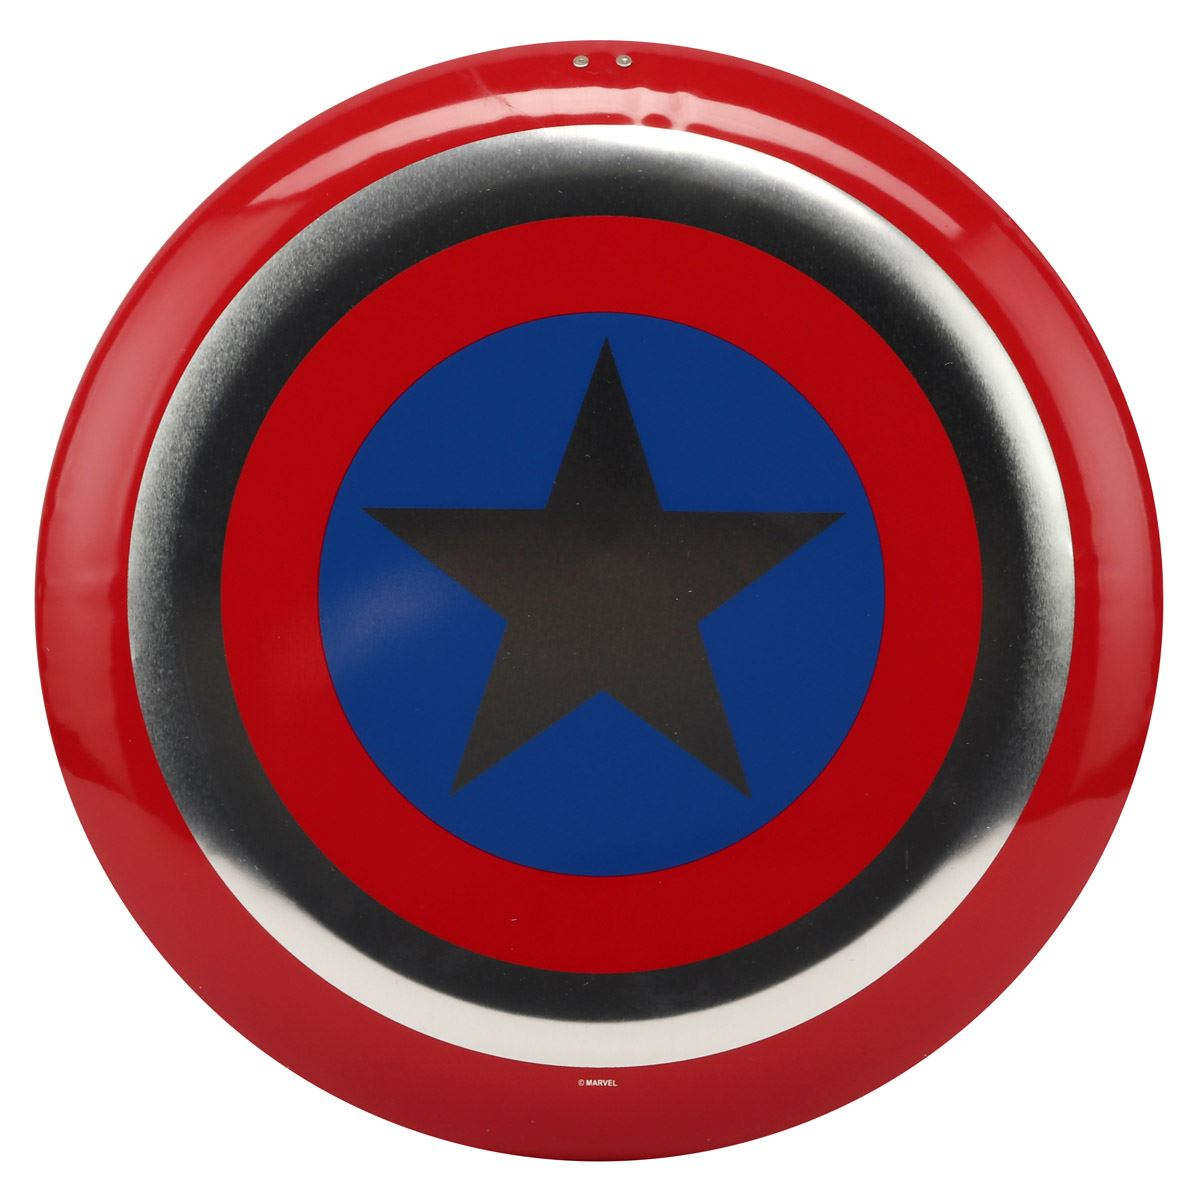 Placa de adorno captain america shield  - Sanborns